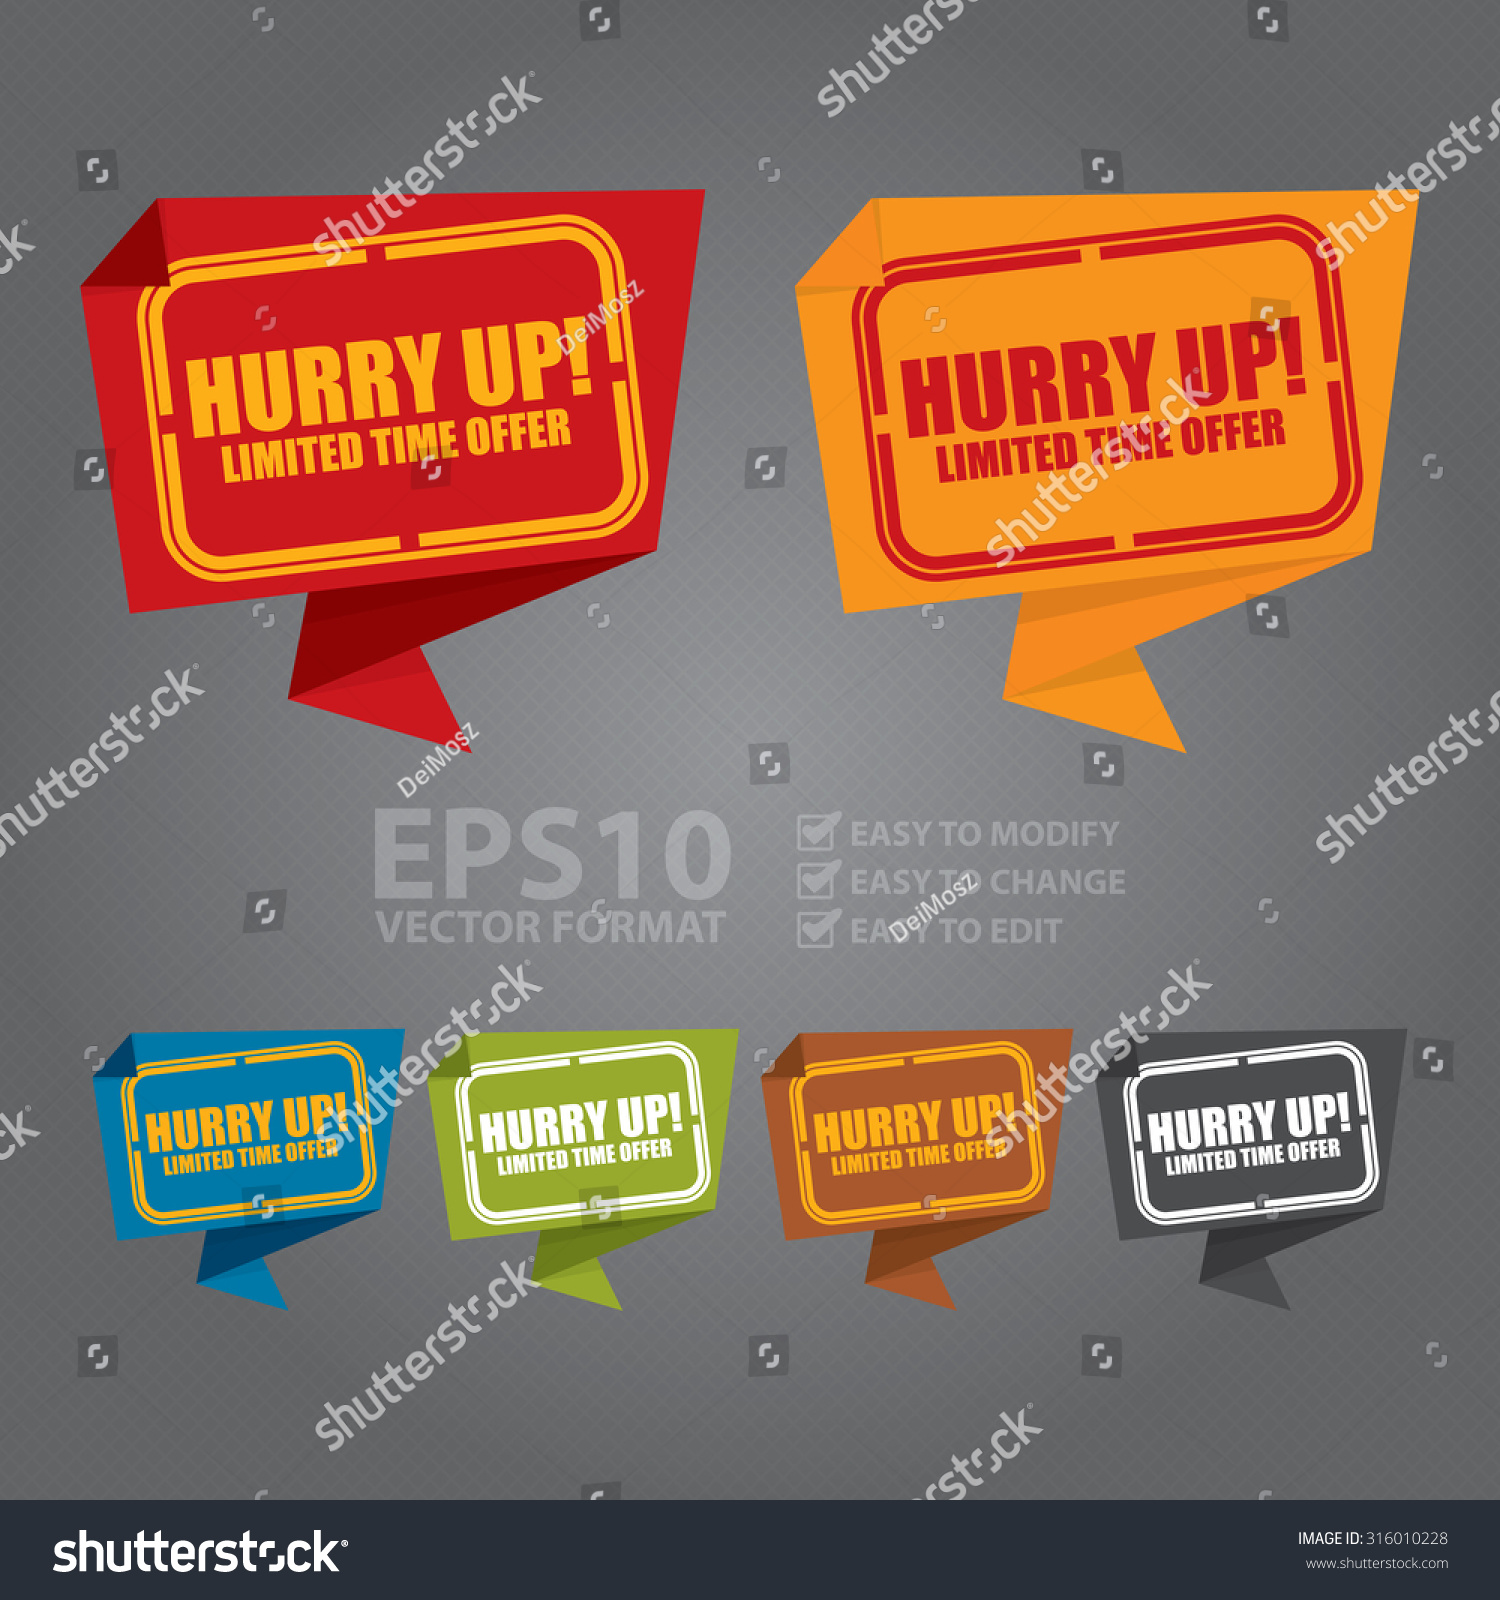 Price cut limited time offer shop now for the best selection hurry - Vector Hurry Up Limited Time Offer Paper Origami Speech Bubble Or Speech Balloon Infographics